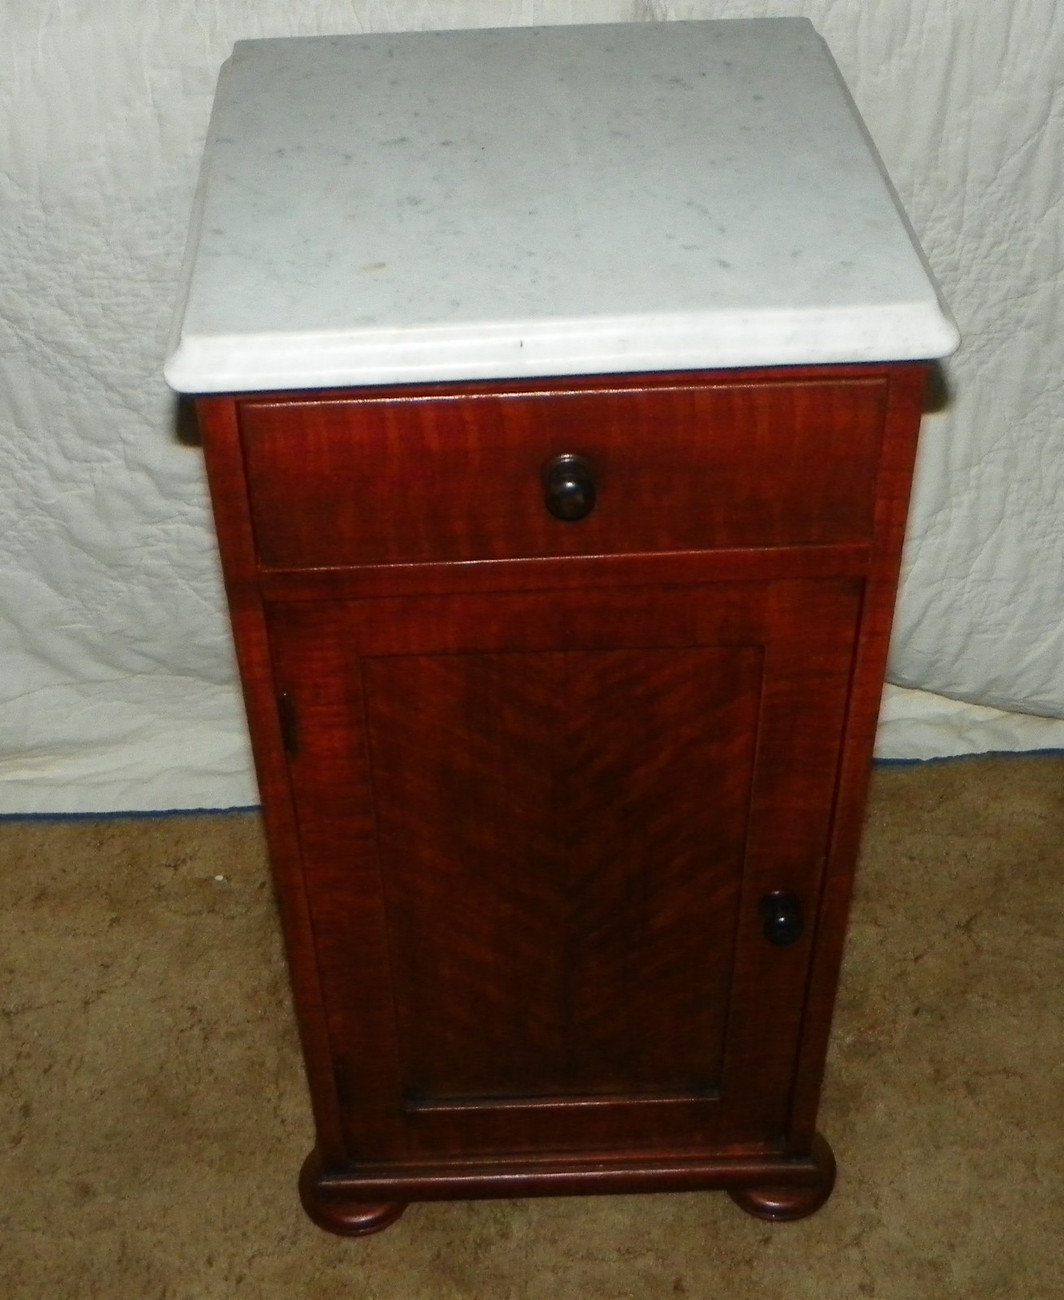 Hand Painted Faux Tiger Cherry Finish Marble Top Half Commode or Nightstand